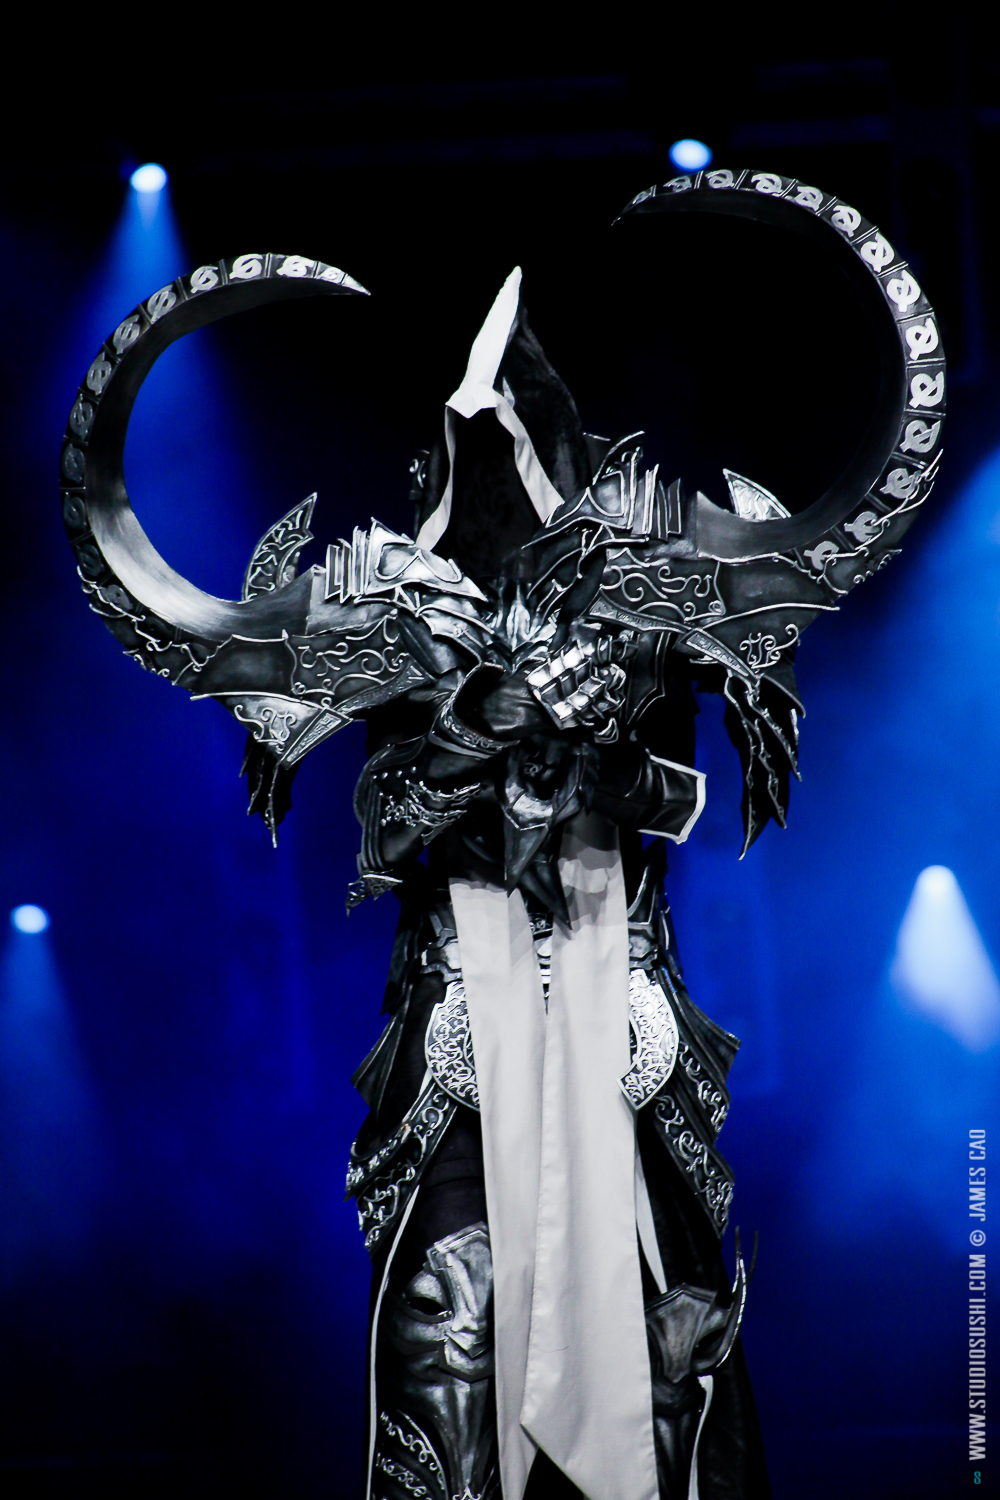 malthael_cosplay_by_sakuraflamme-d7qicrk